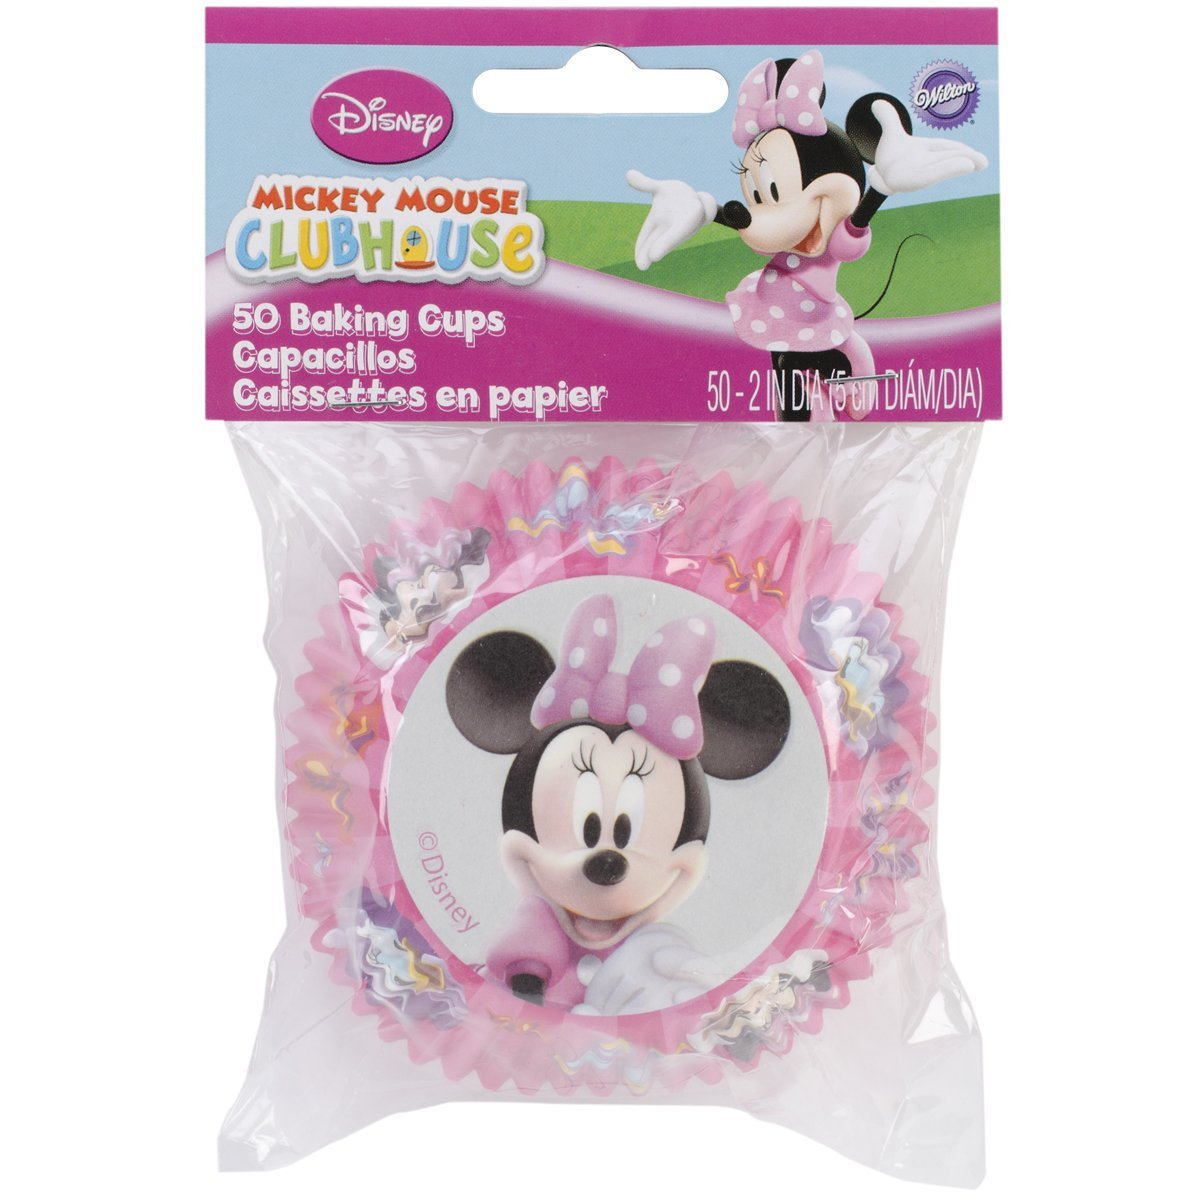 Wilton Disney Mickey Mouse Clubhouse Minnie Baking Cups - $4.90